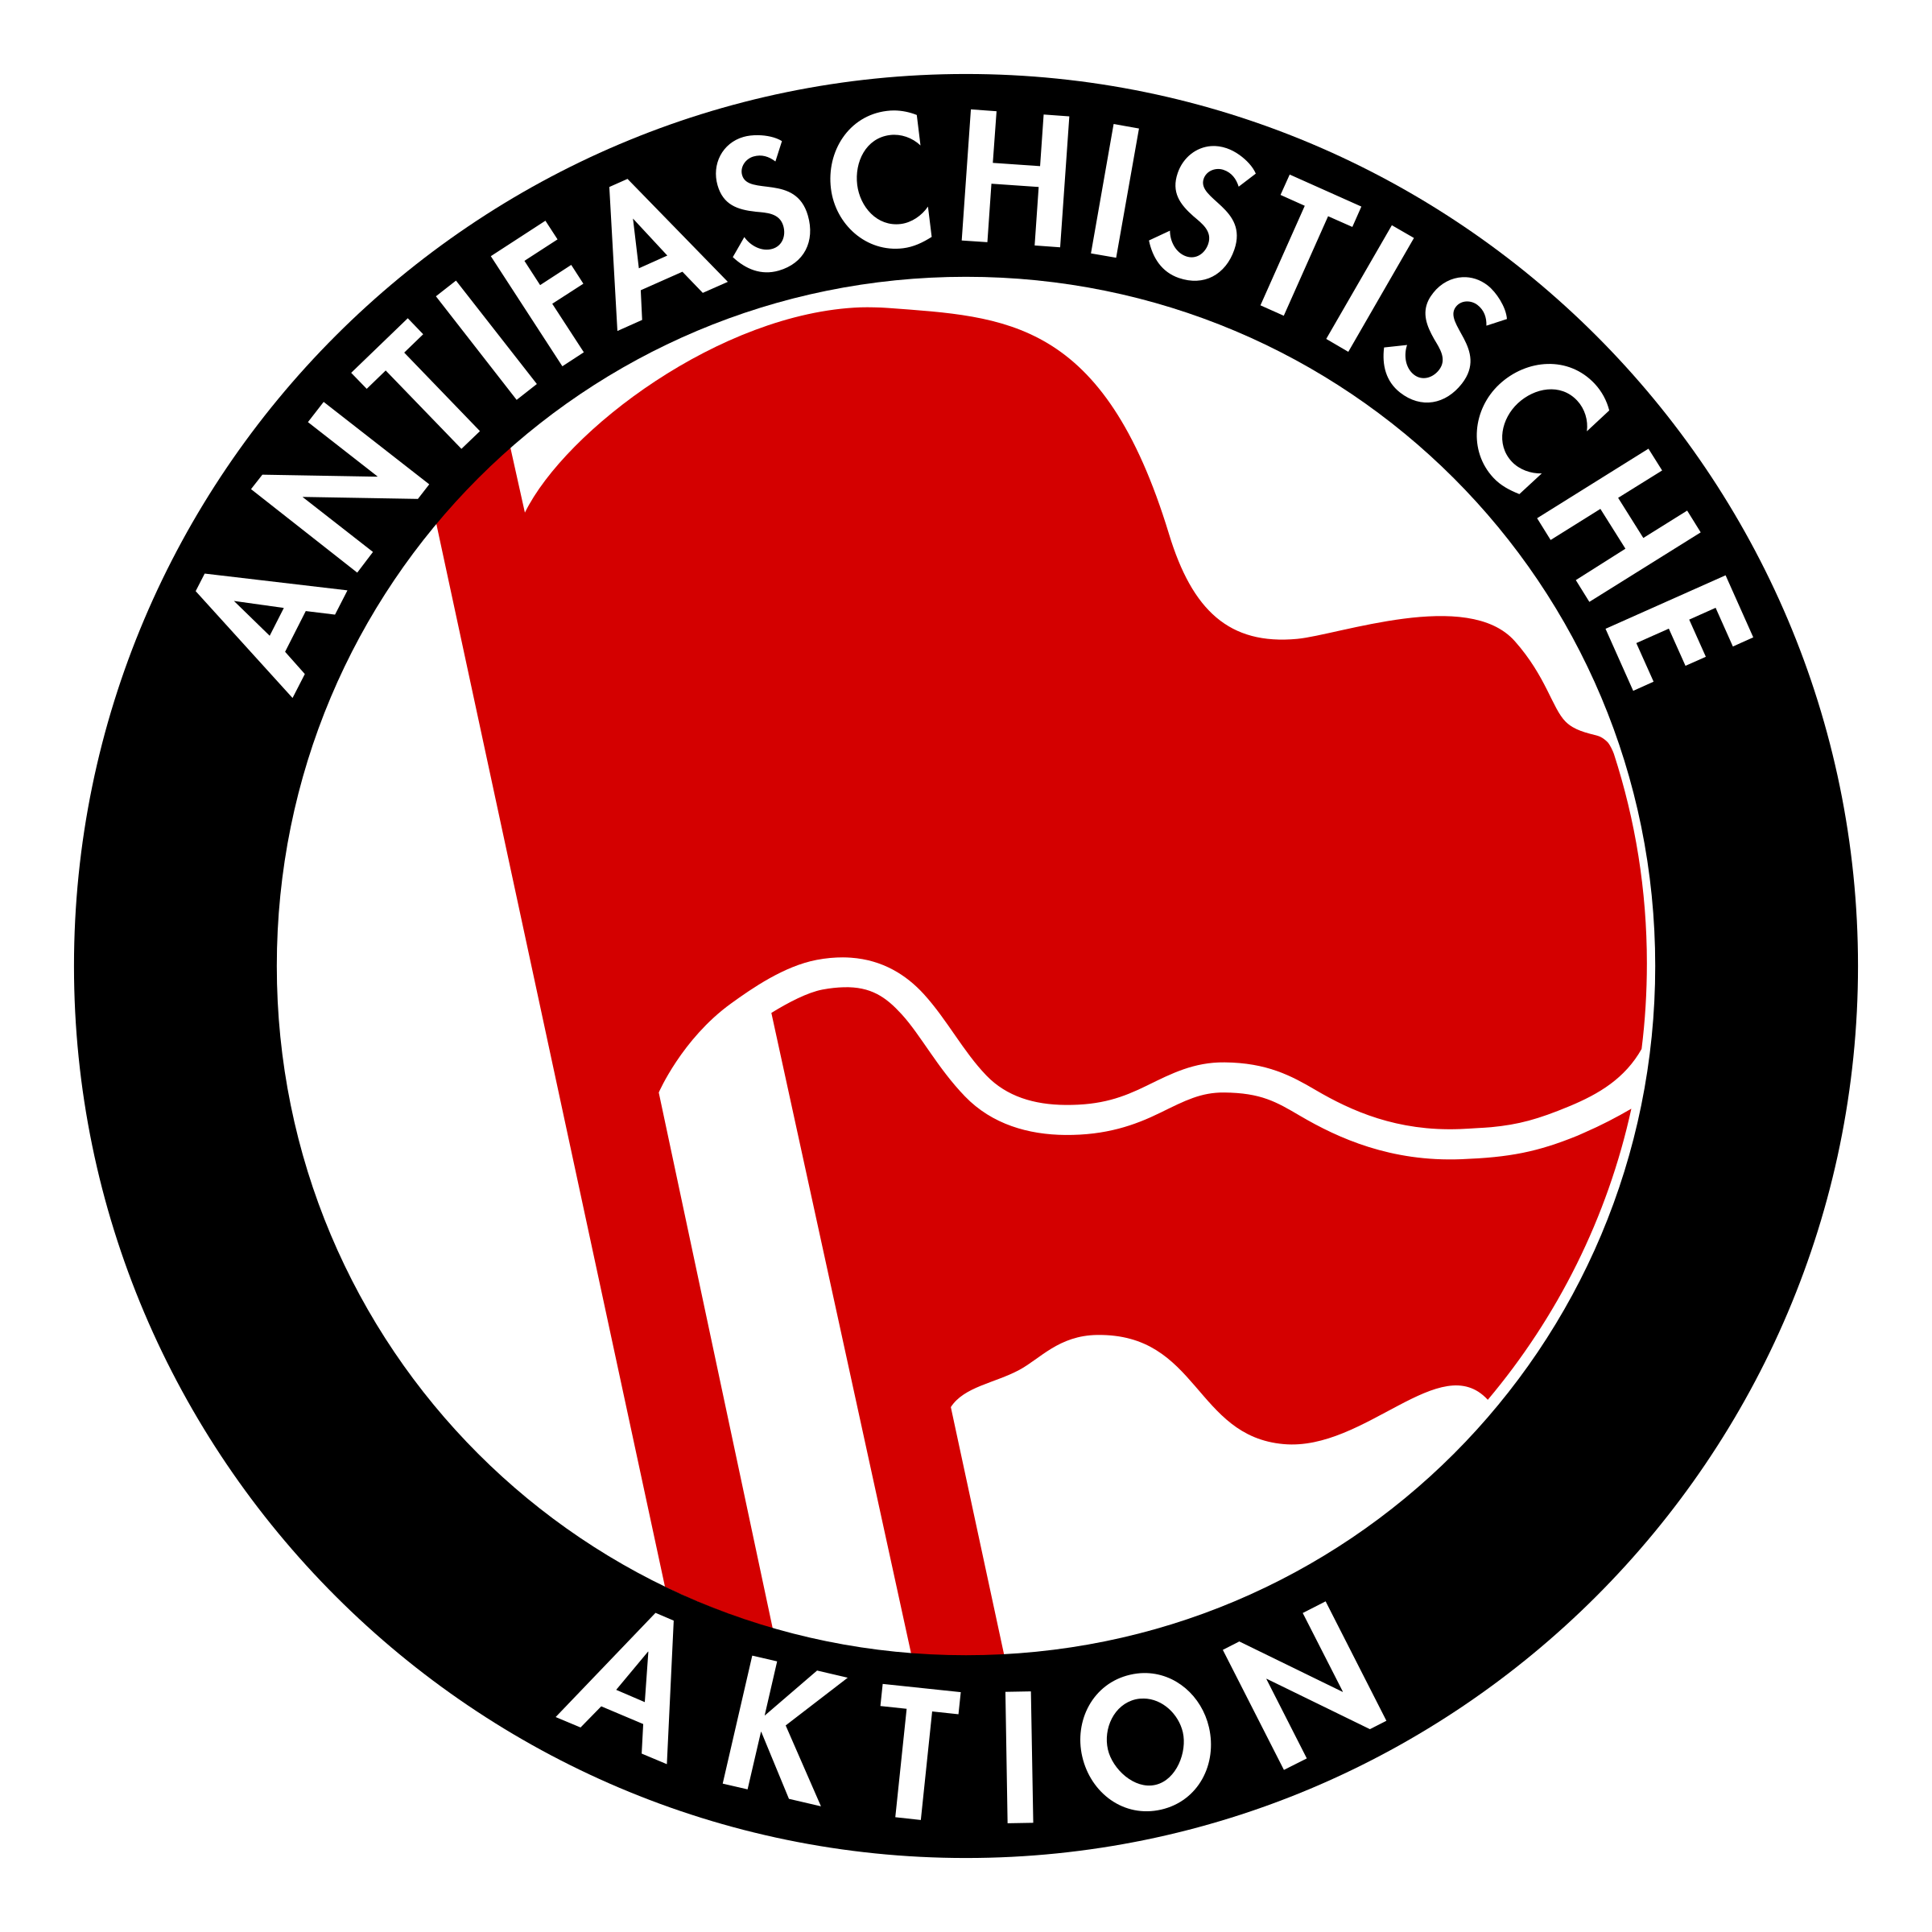 Antifascist Action Old & New by worker